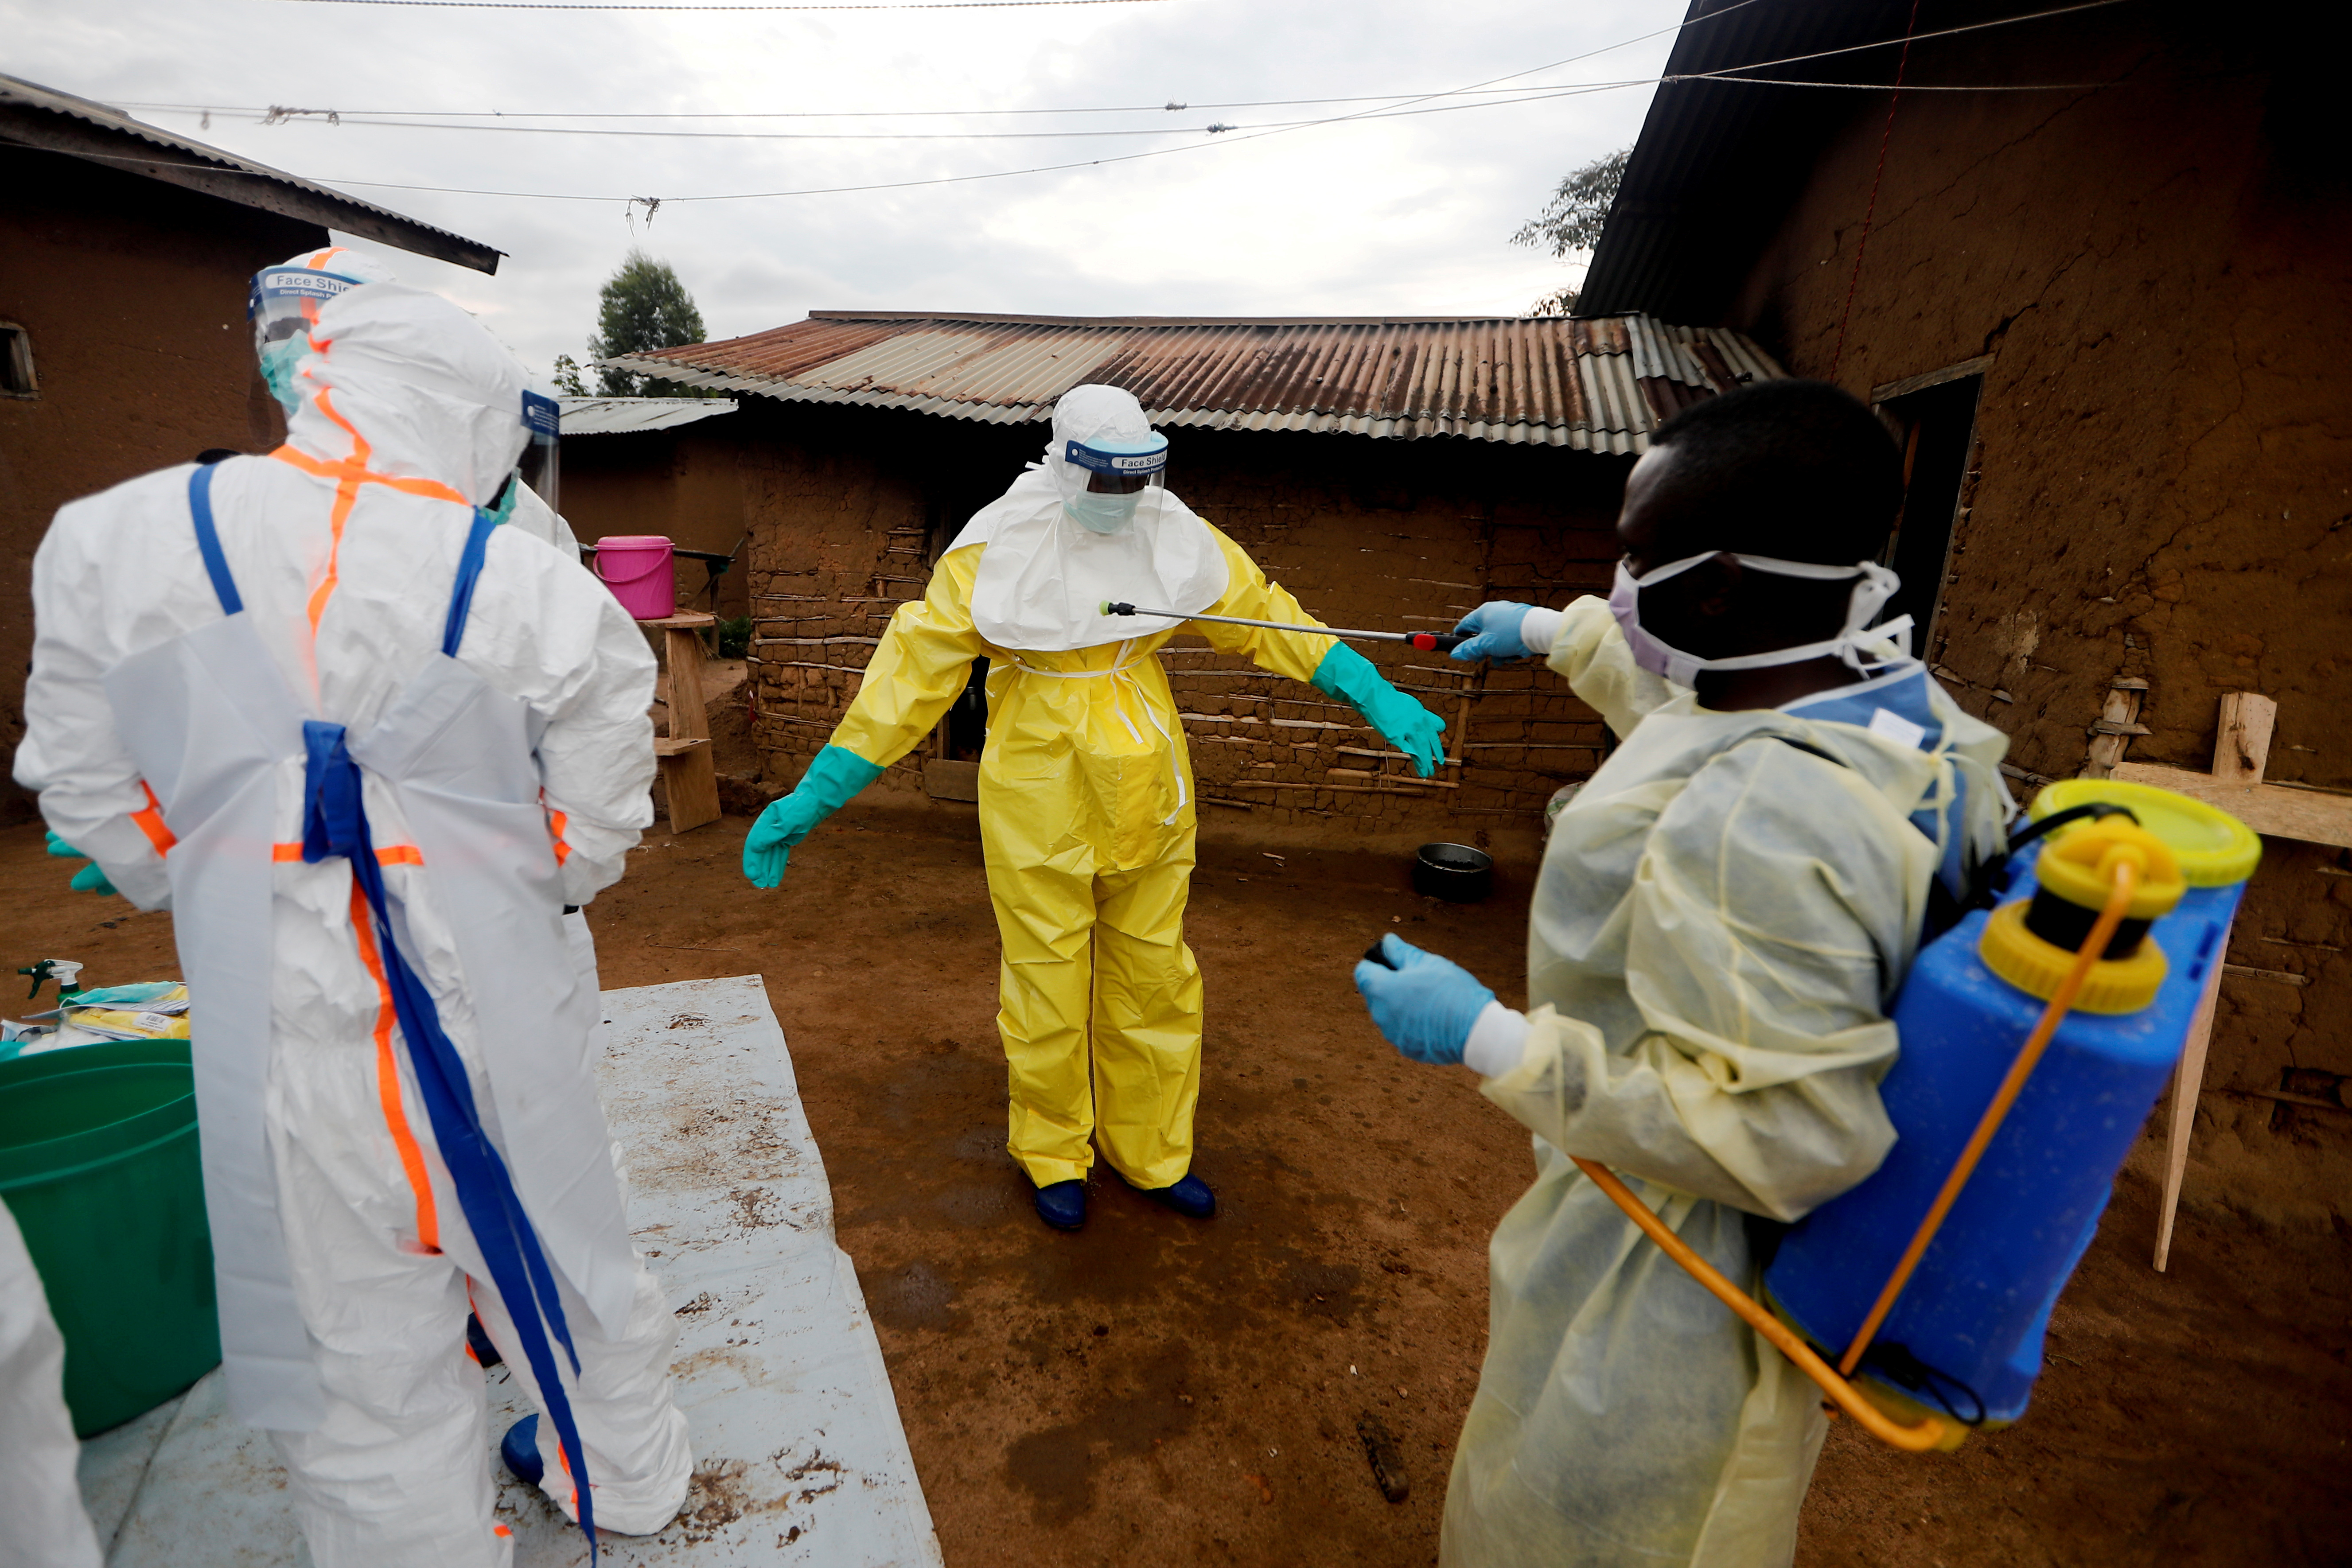 Kavota Mugisha Robert, a healthcare worker, who volunteered in the Ebola response, decontaminates his colleague after he entered the house of 85-year-old woman, suspected of dying of Ebola, in the eastern Congolese town of Beni in the Democratic Republic of Congo, October 8, 2019. REUTERS/Zohra Bensemra/File Photo